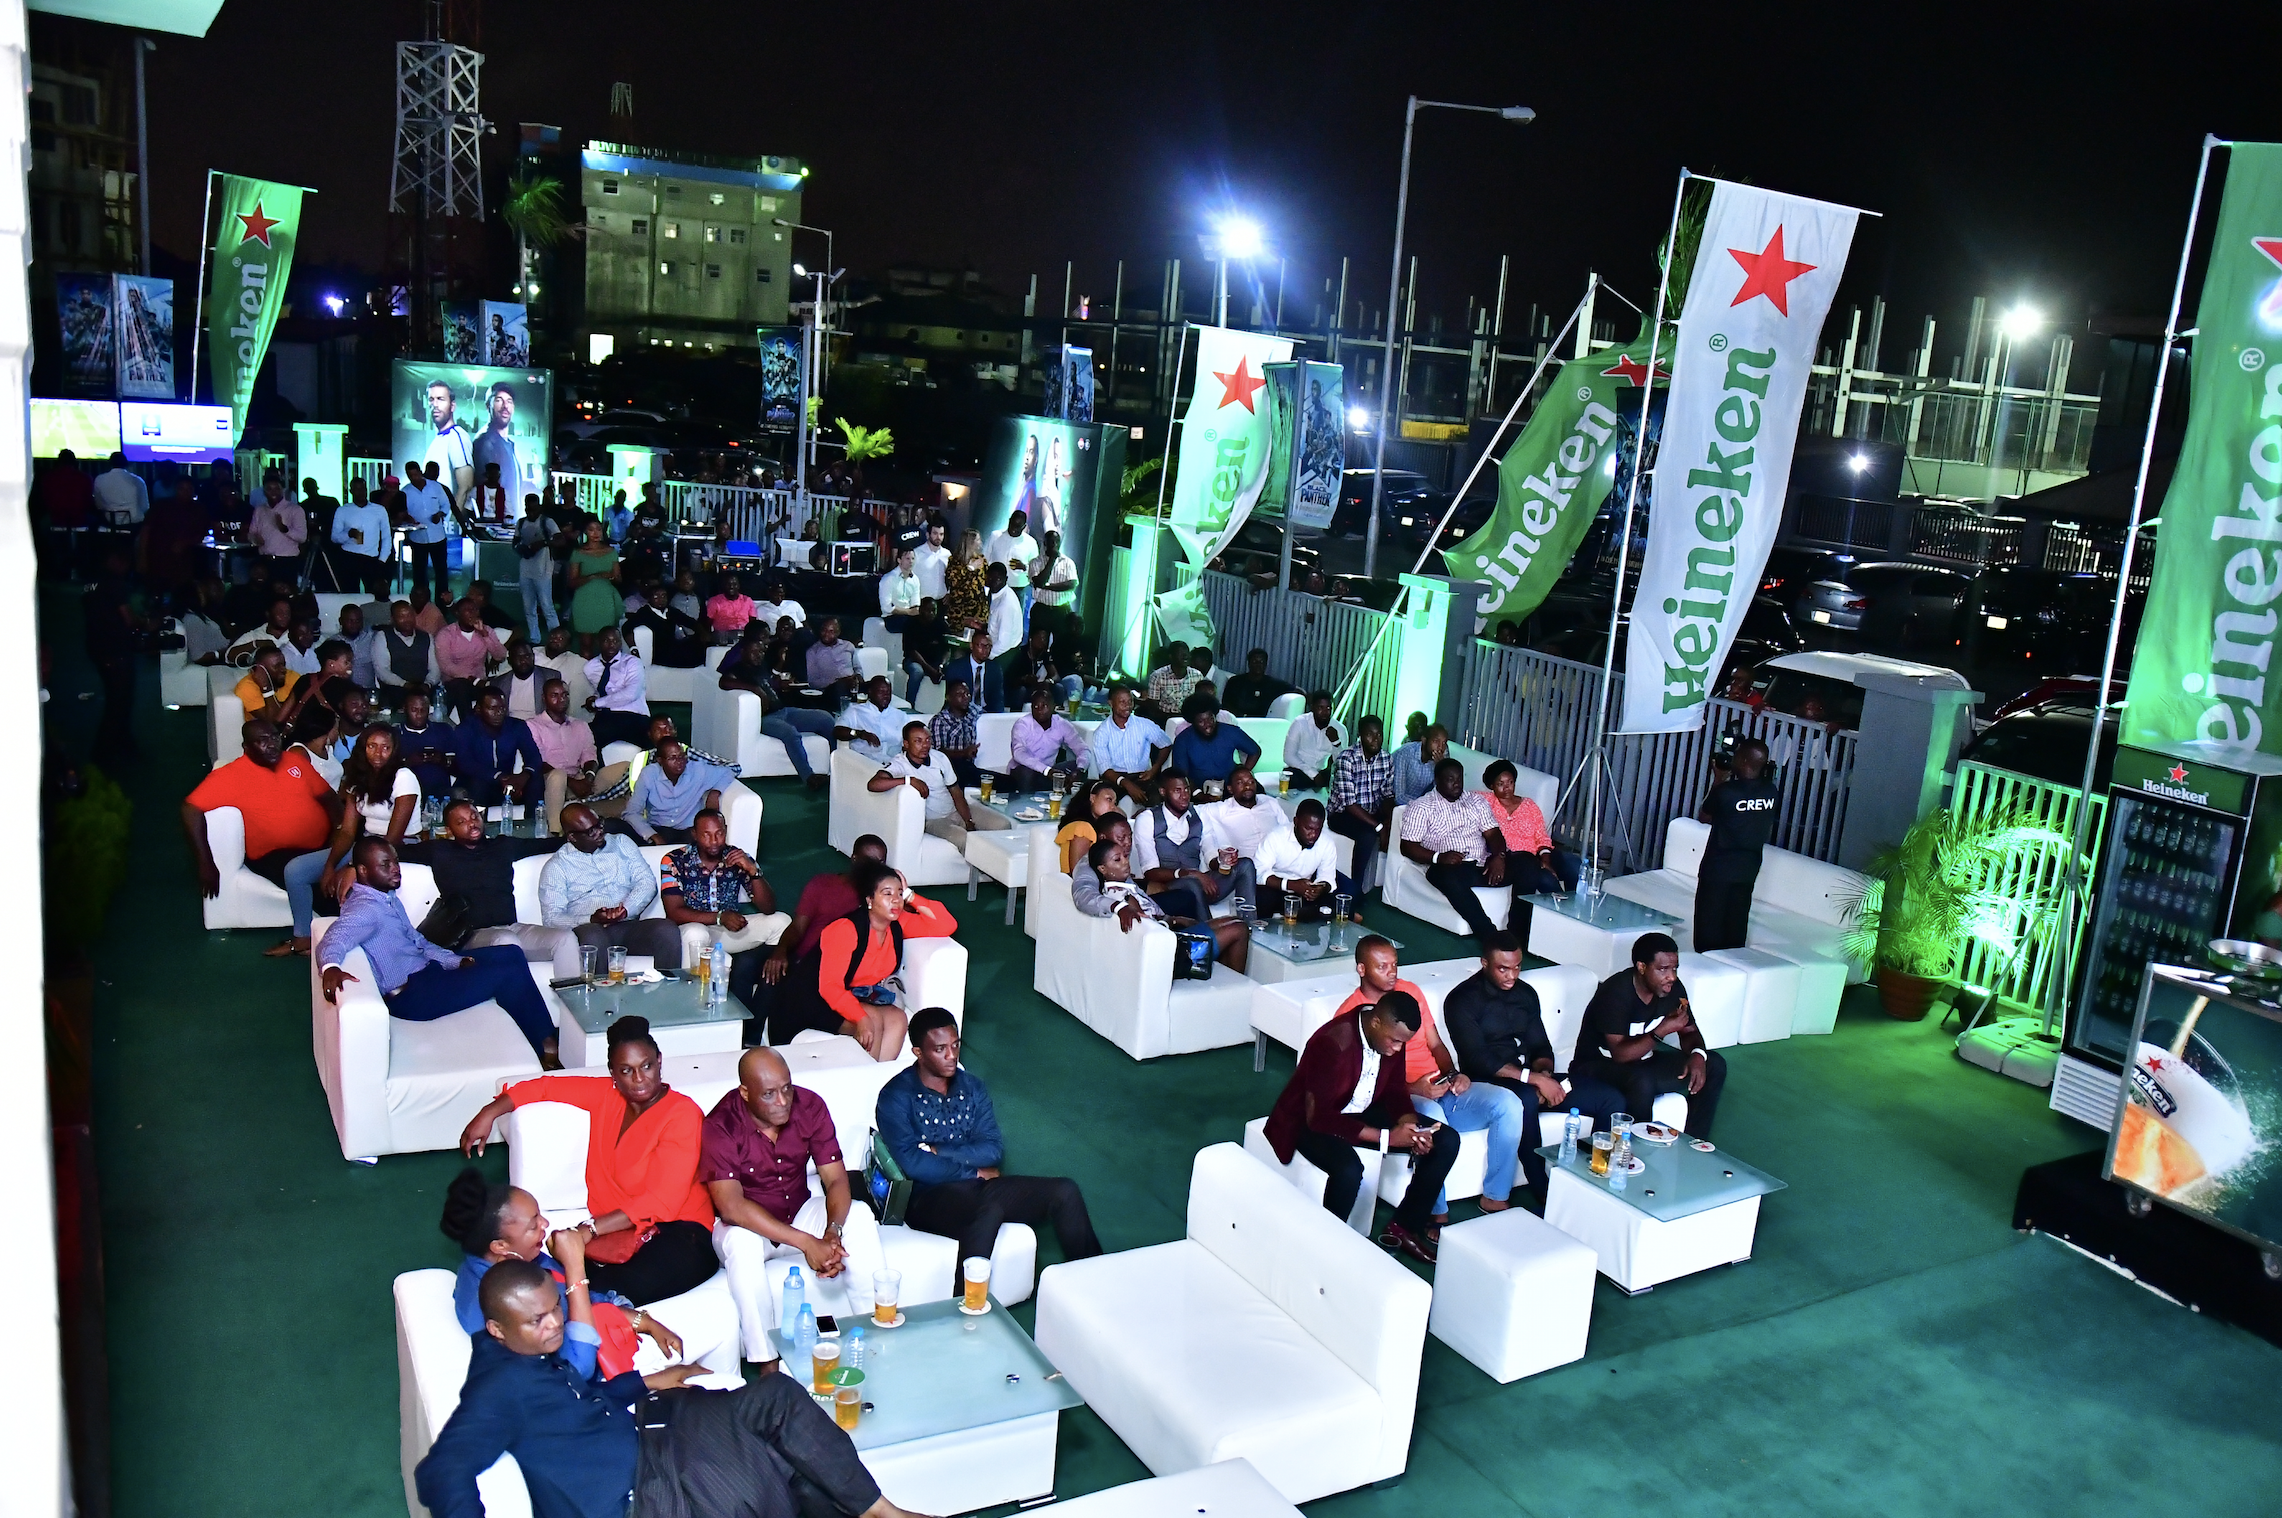 Heineken Shares UEFA Champions League Drama With Lagos Fans On Valentine's Day